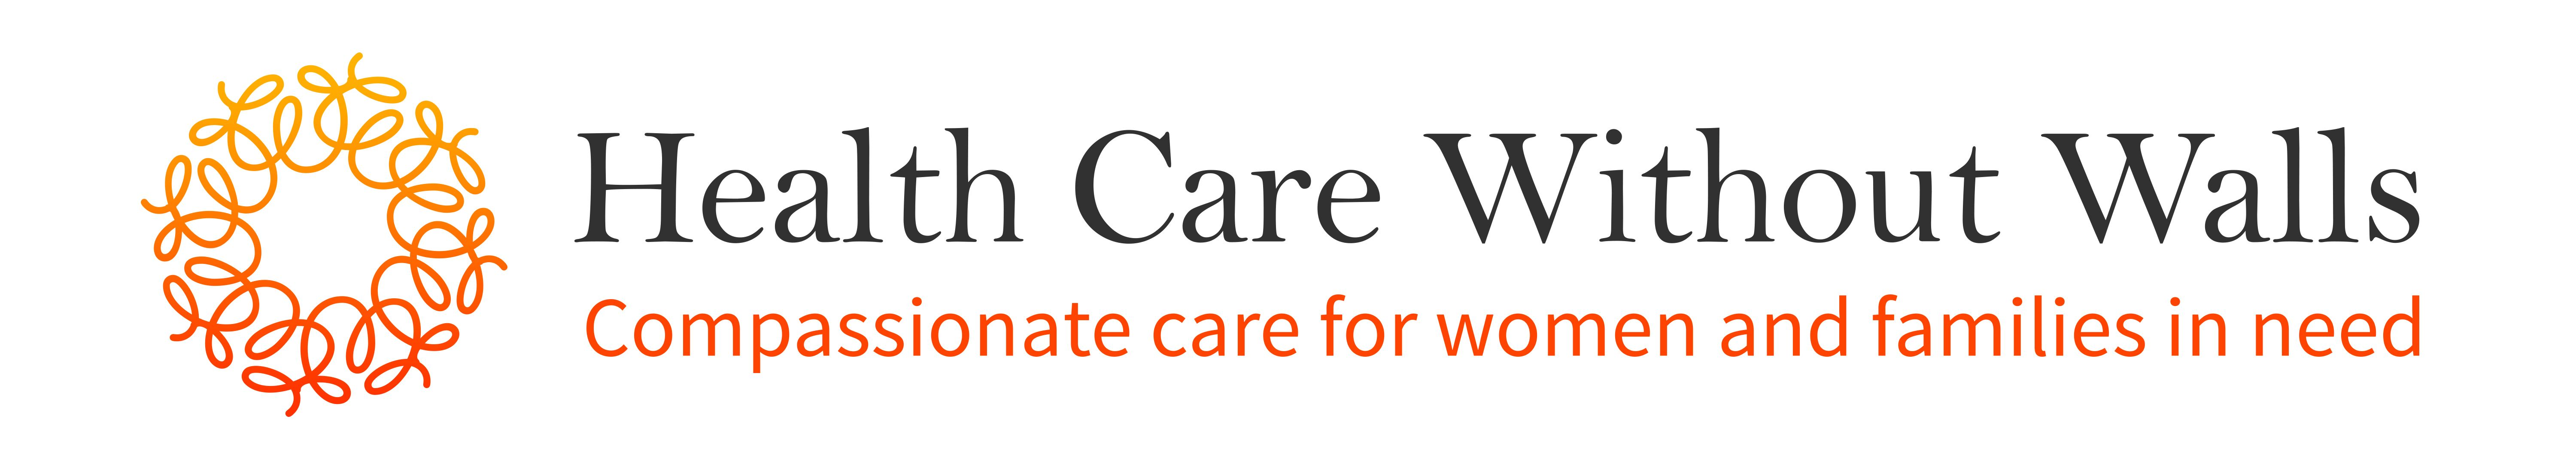 Women Of Means - Medical Care For Women in Need